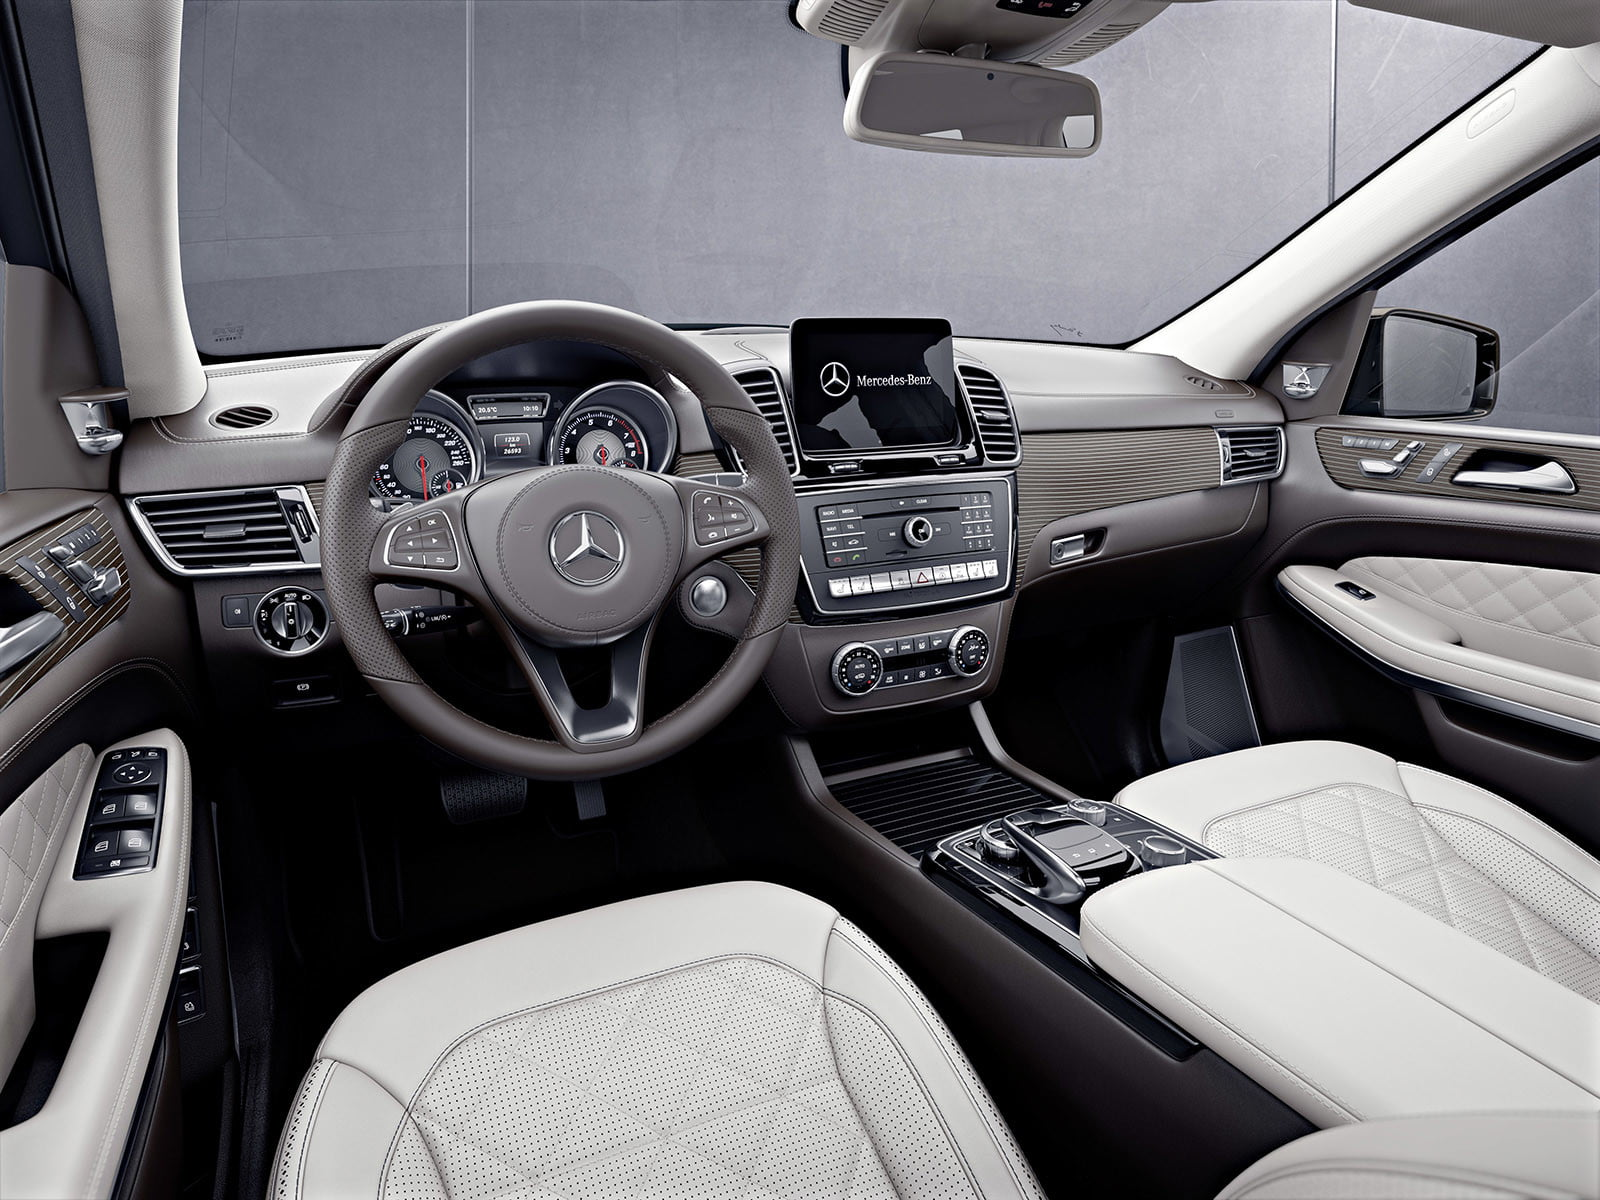 Mercedes Benz Reveals Suave Gls Grand Edition Ahead Of